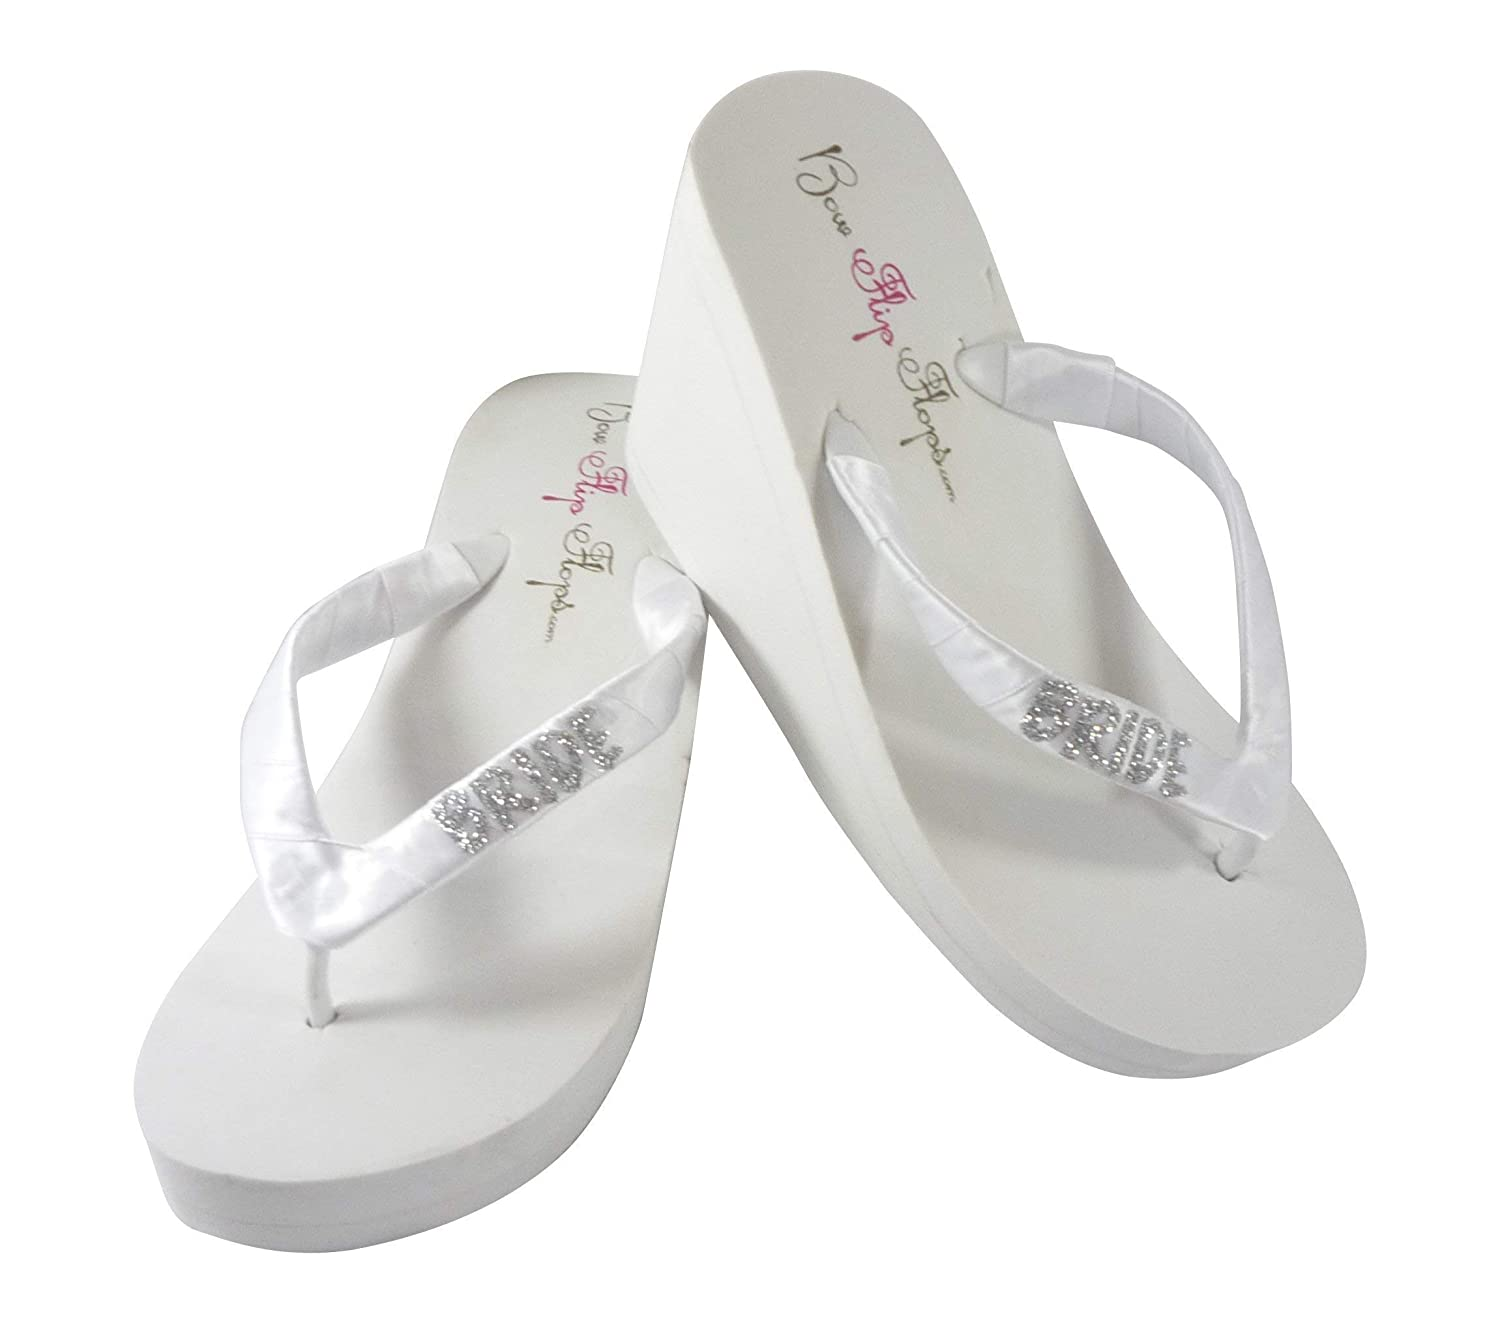 9e7f8fff86b01 Amazon.com: Glitter Bride Flip Flops in White or Ivory Wedge Heel ...